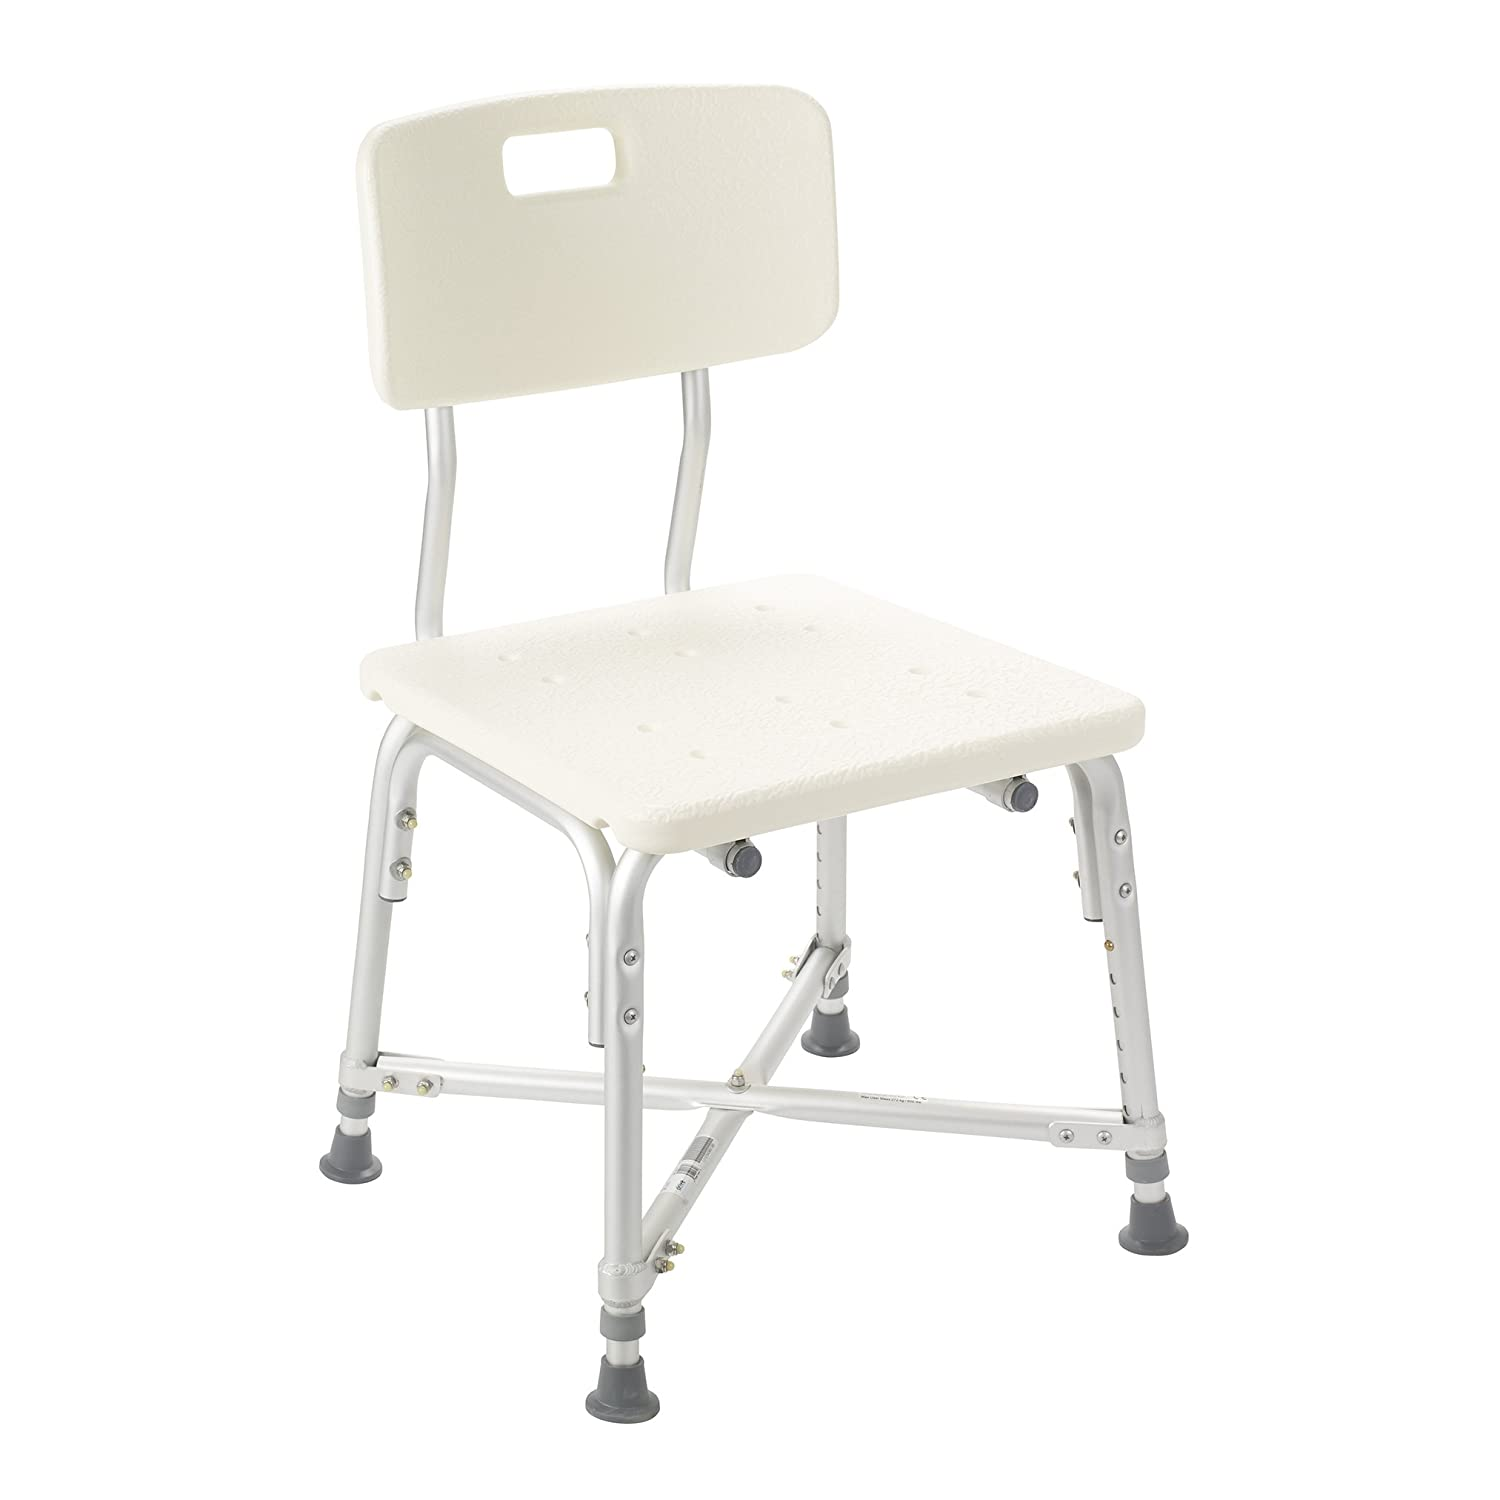 Bariatric Shower Chairs 600 lbs Capacity